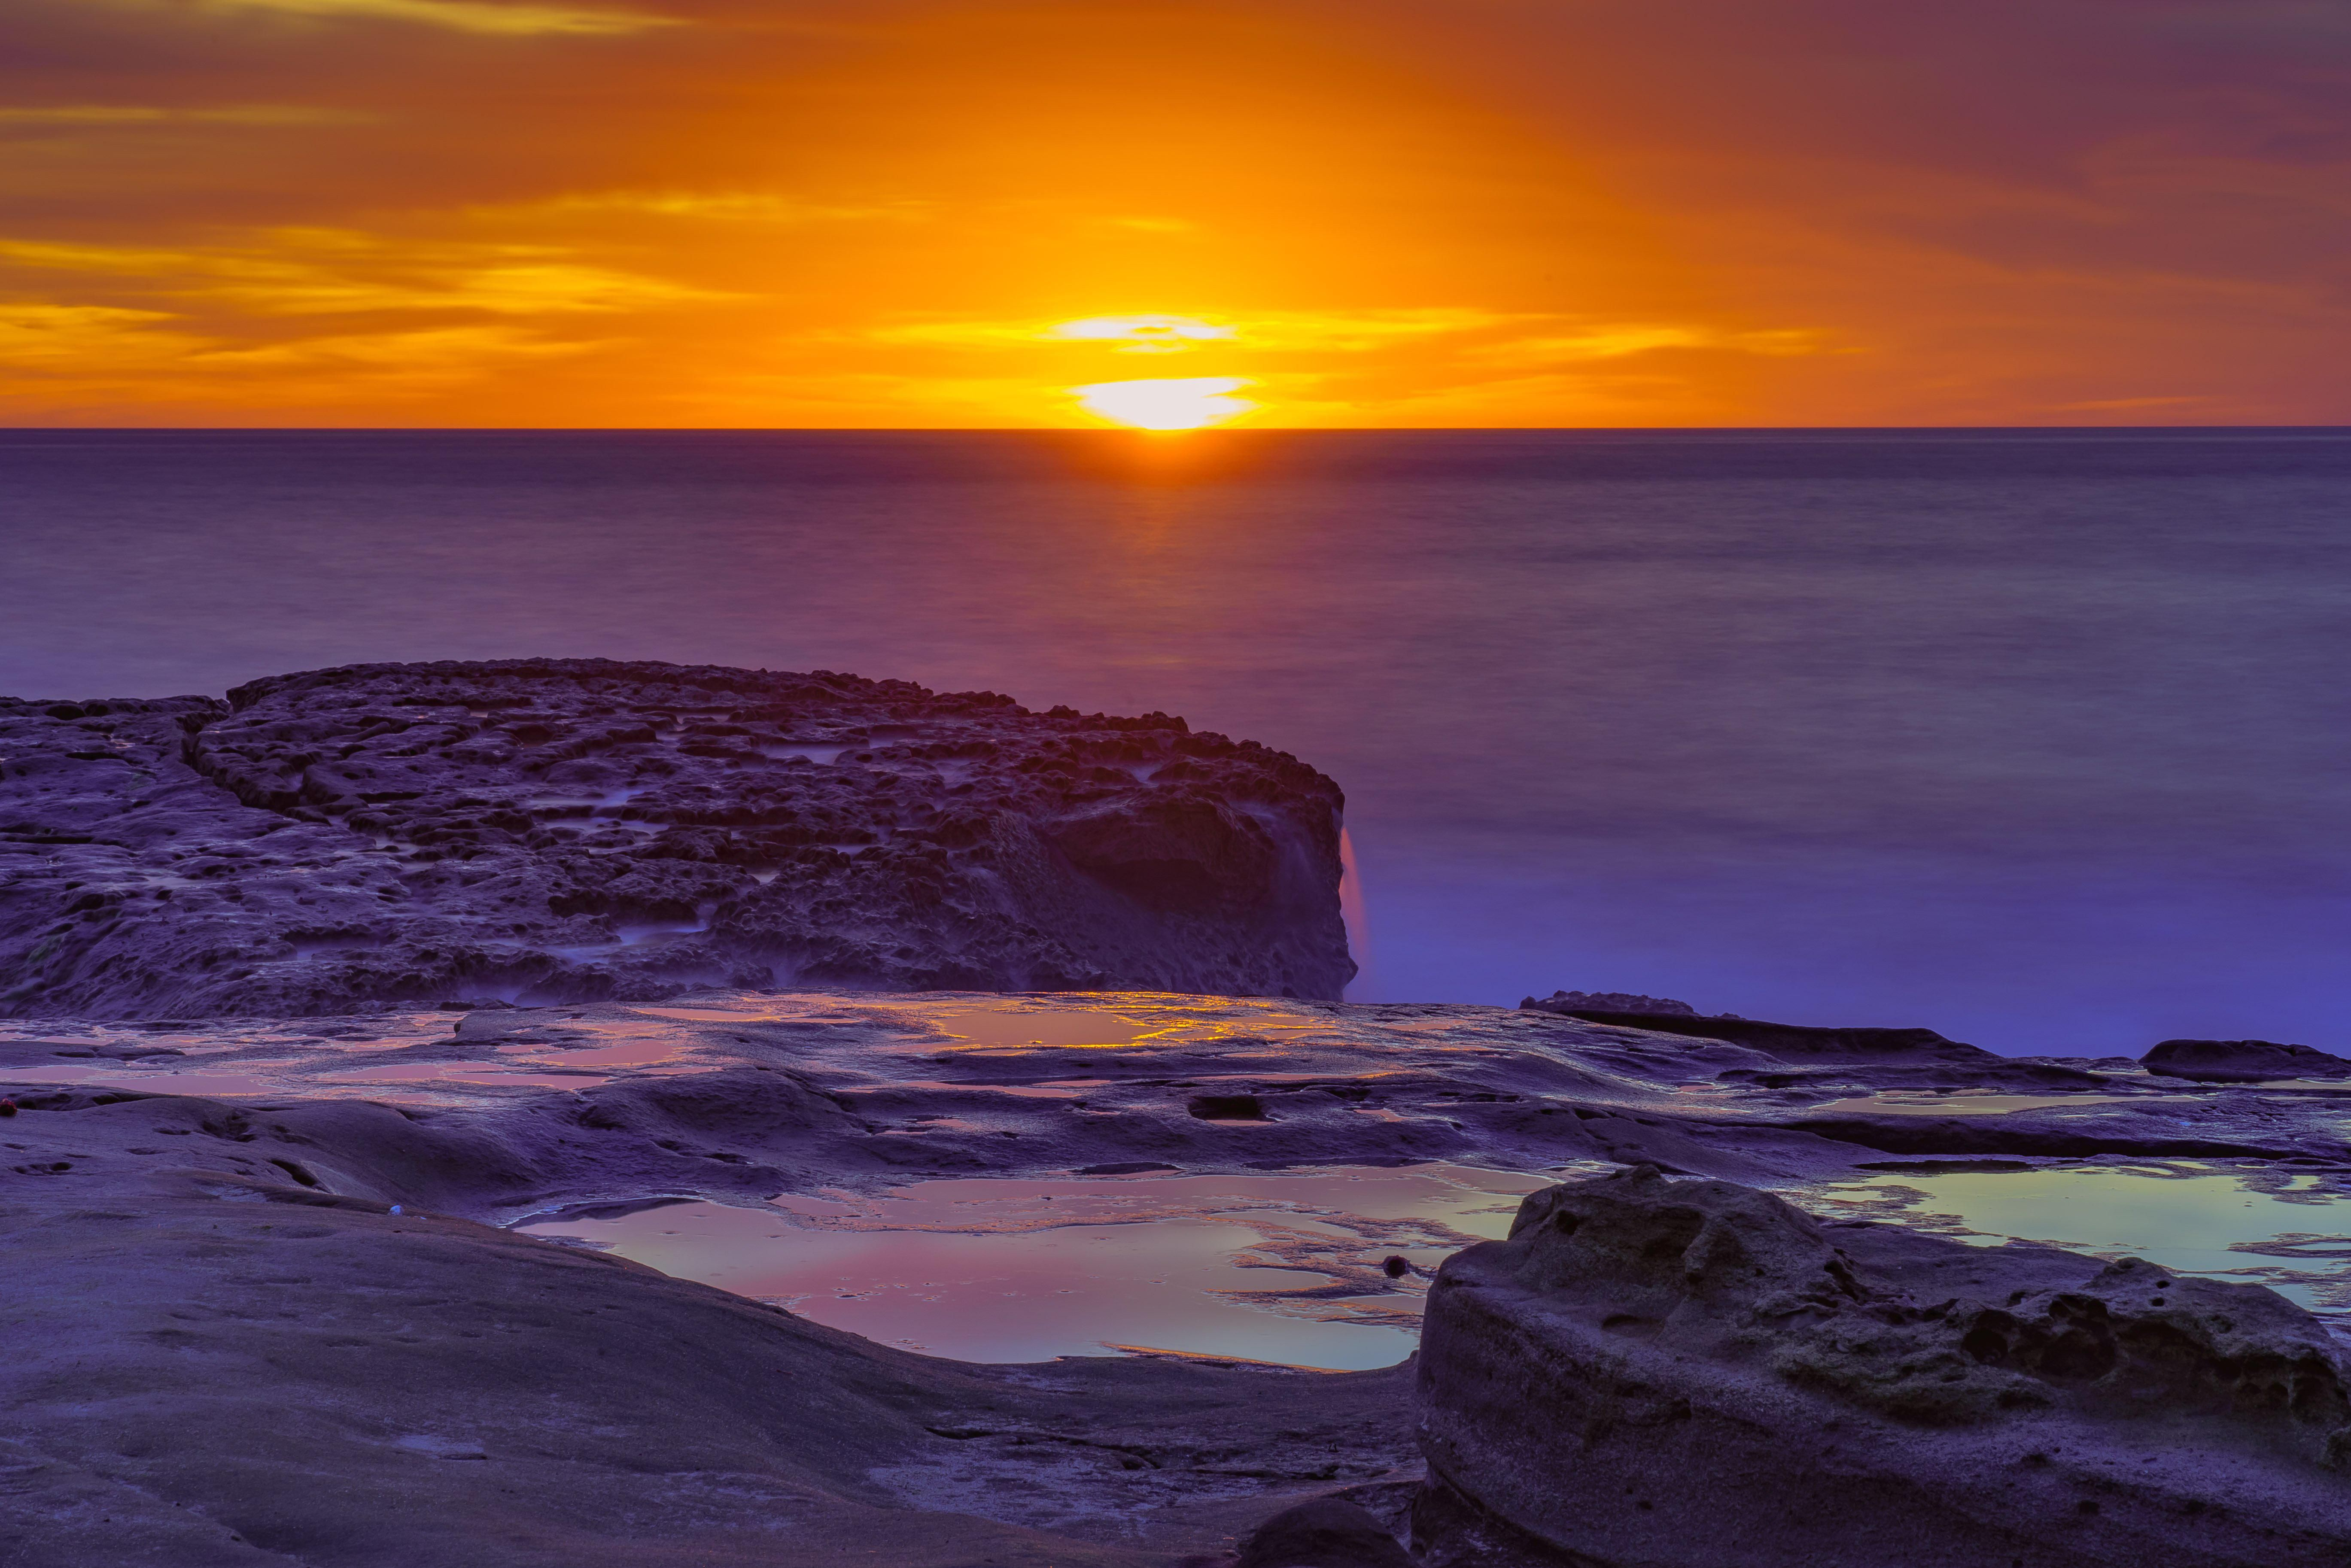 Ocean Beach San Diego Sunset Digital Download Sunset Images Landscape Photography Sunset Photography